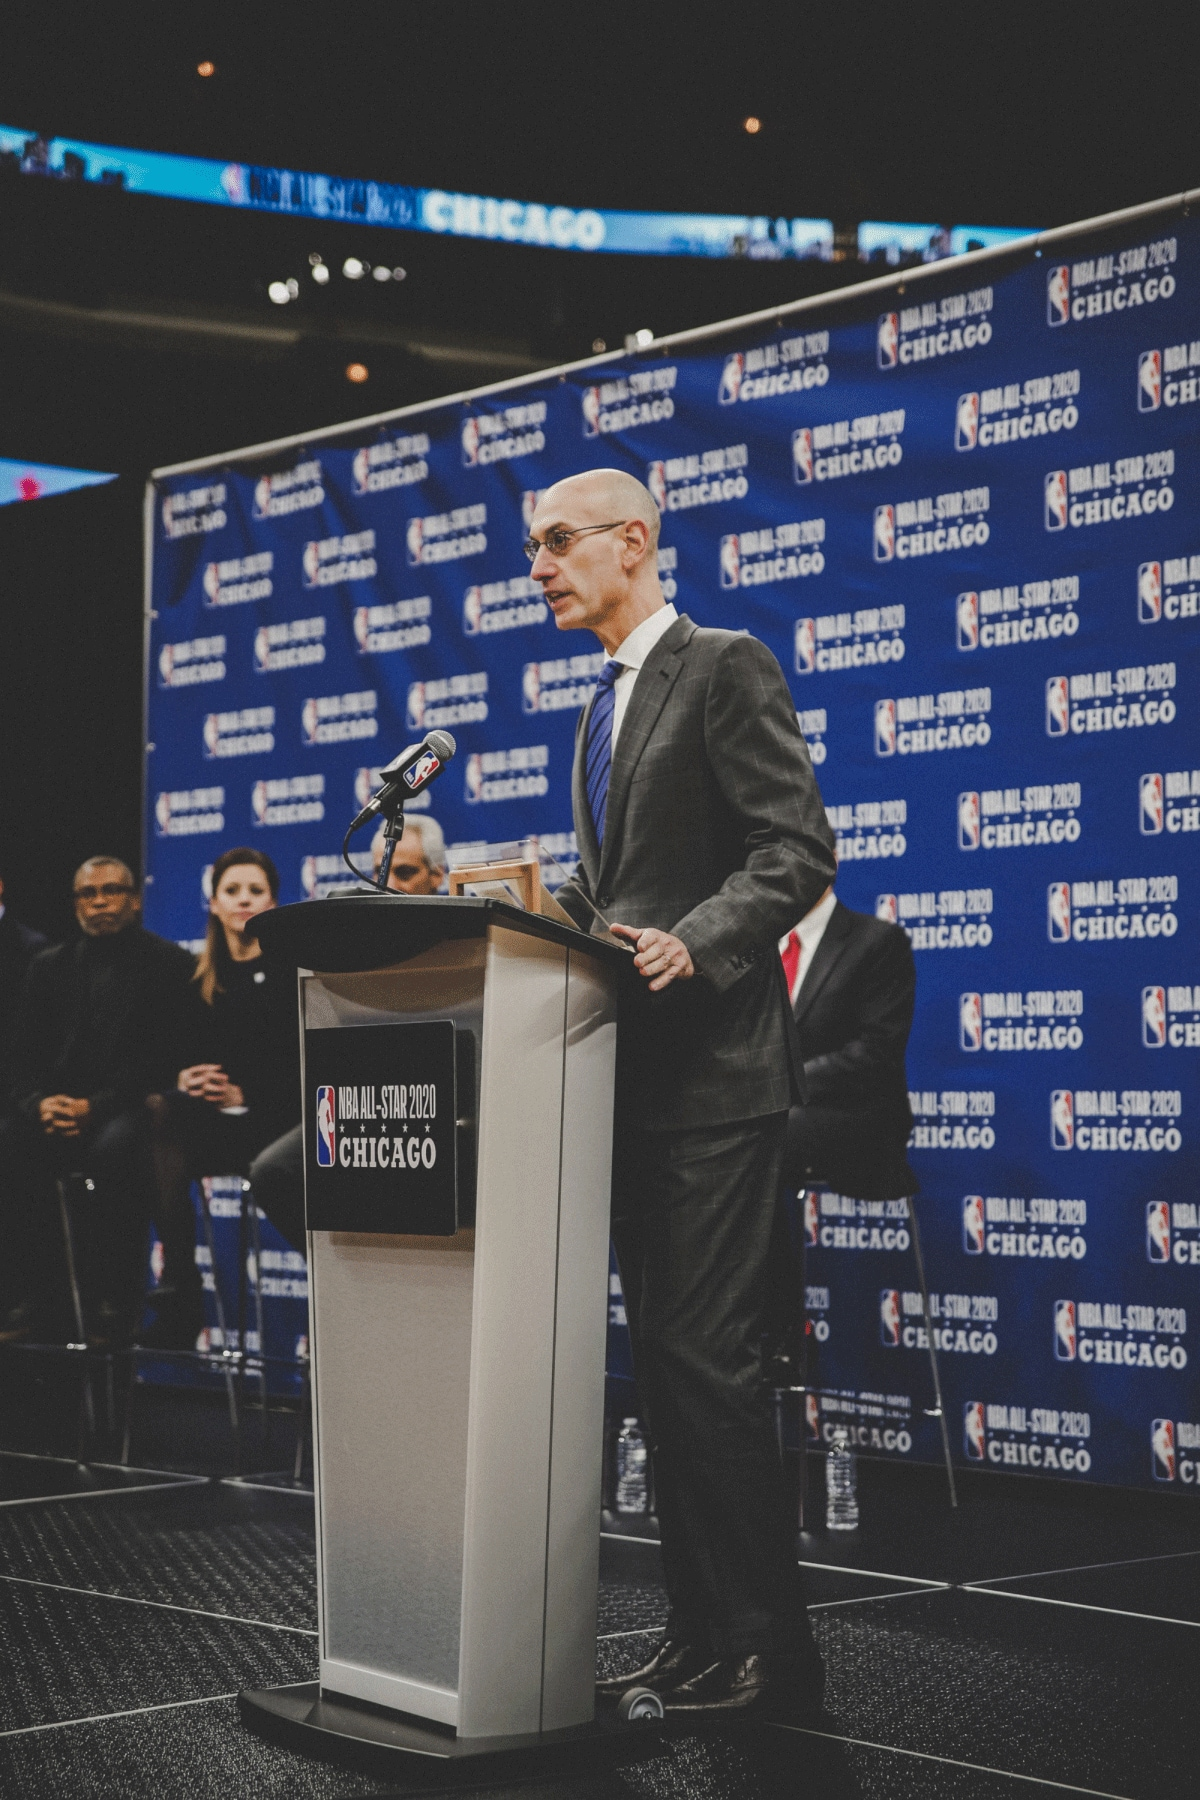 November 10, 2017. Adam Silver addressing a press conference about the NBA All Star Game coming to Chicago, at the United Center, Chicago, IL.